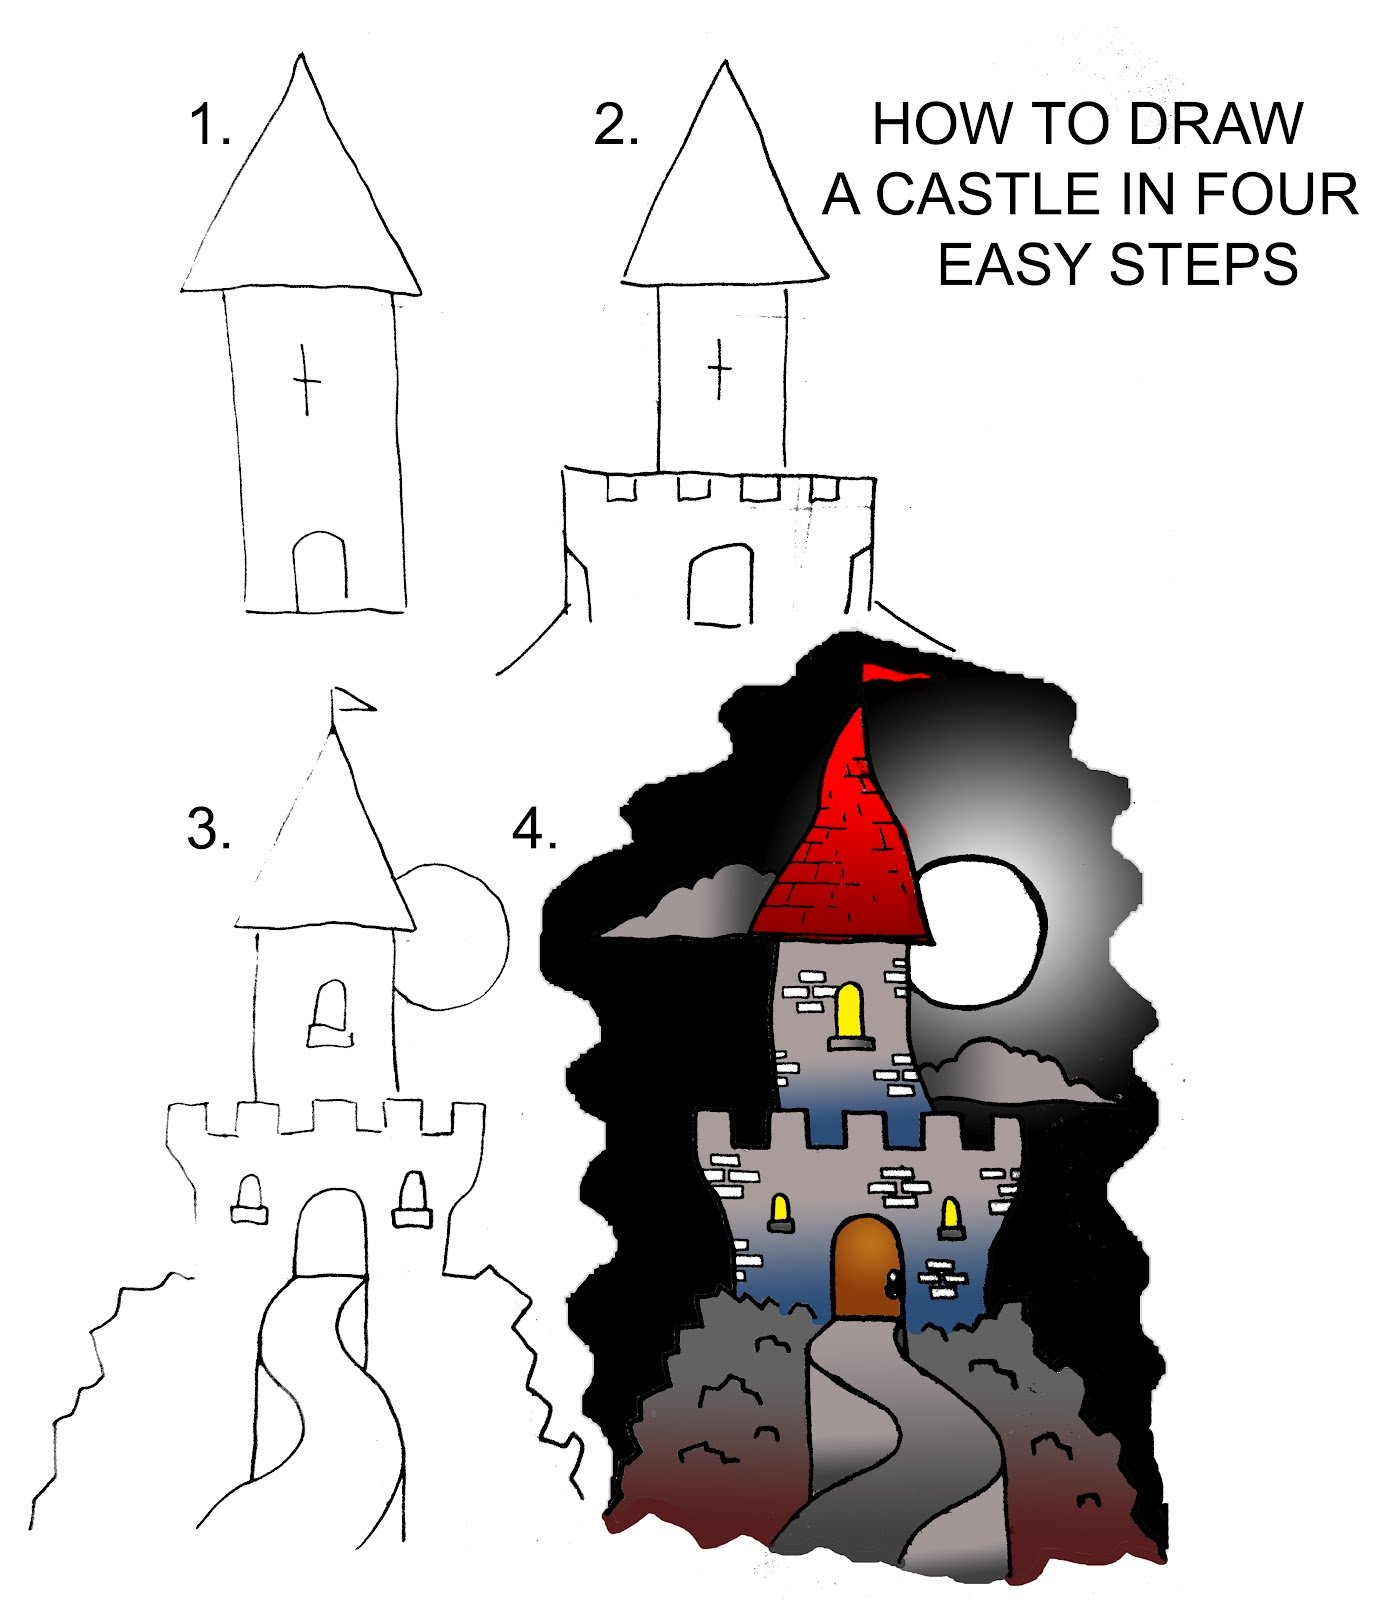 how to draw a castle in four easy steps